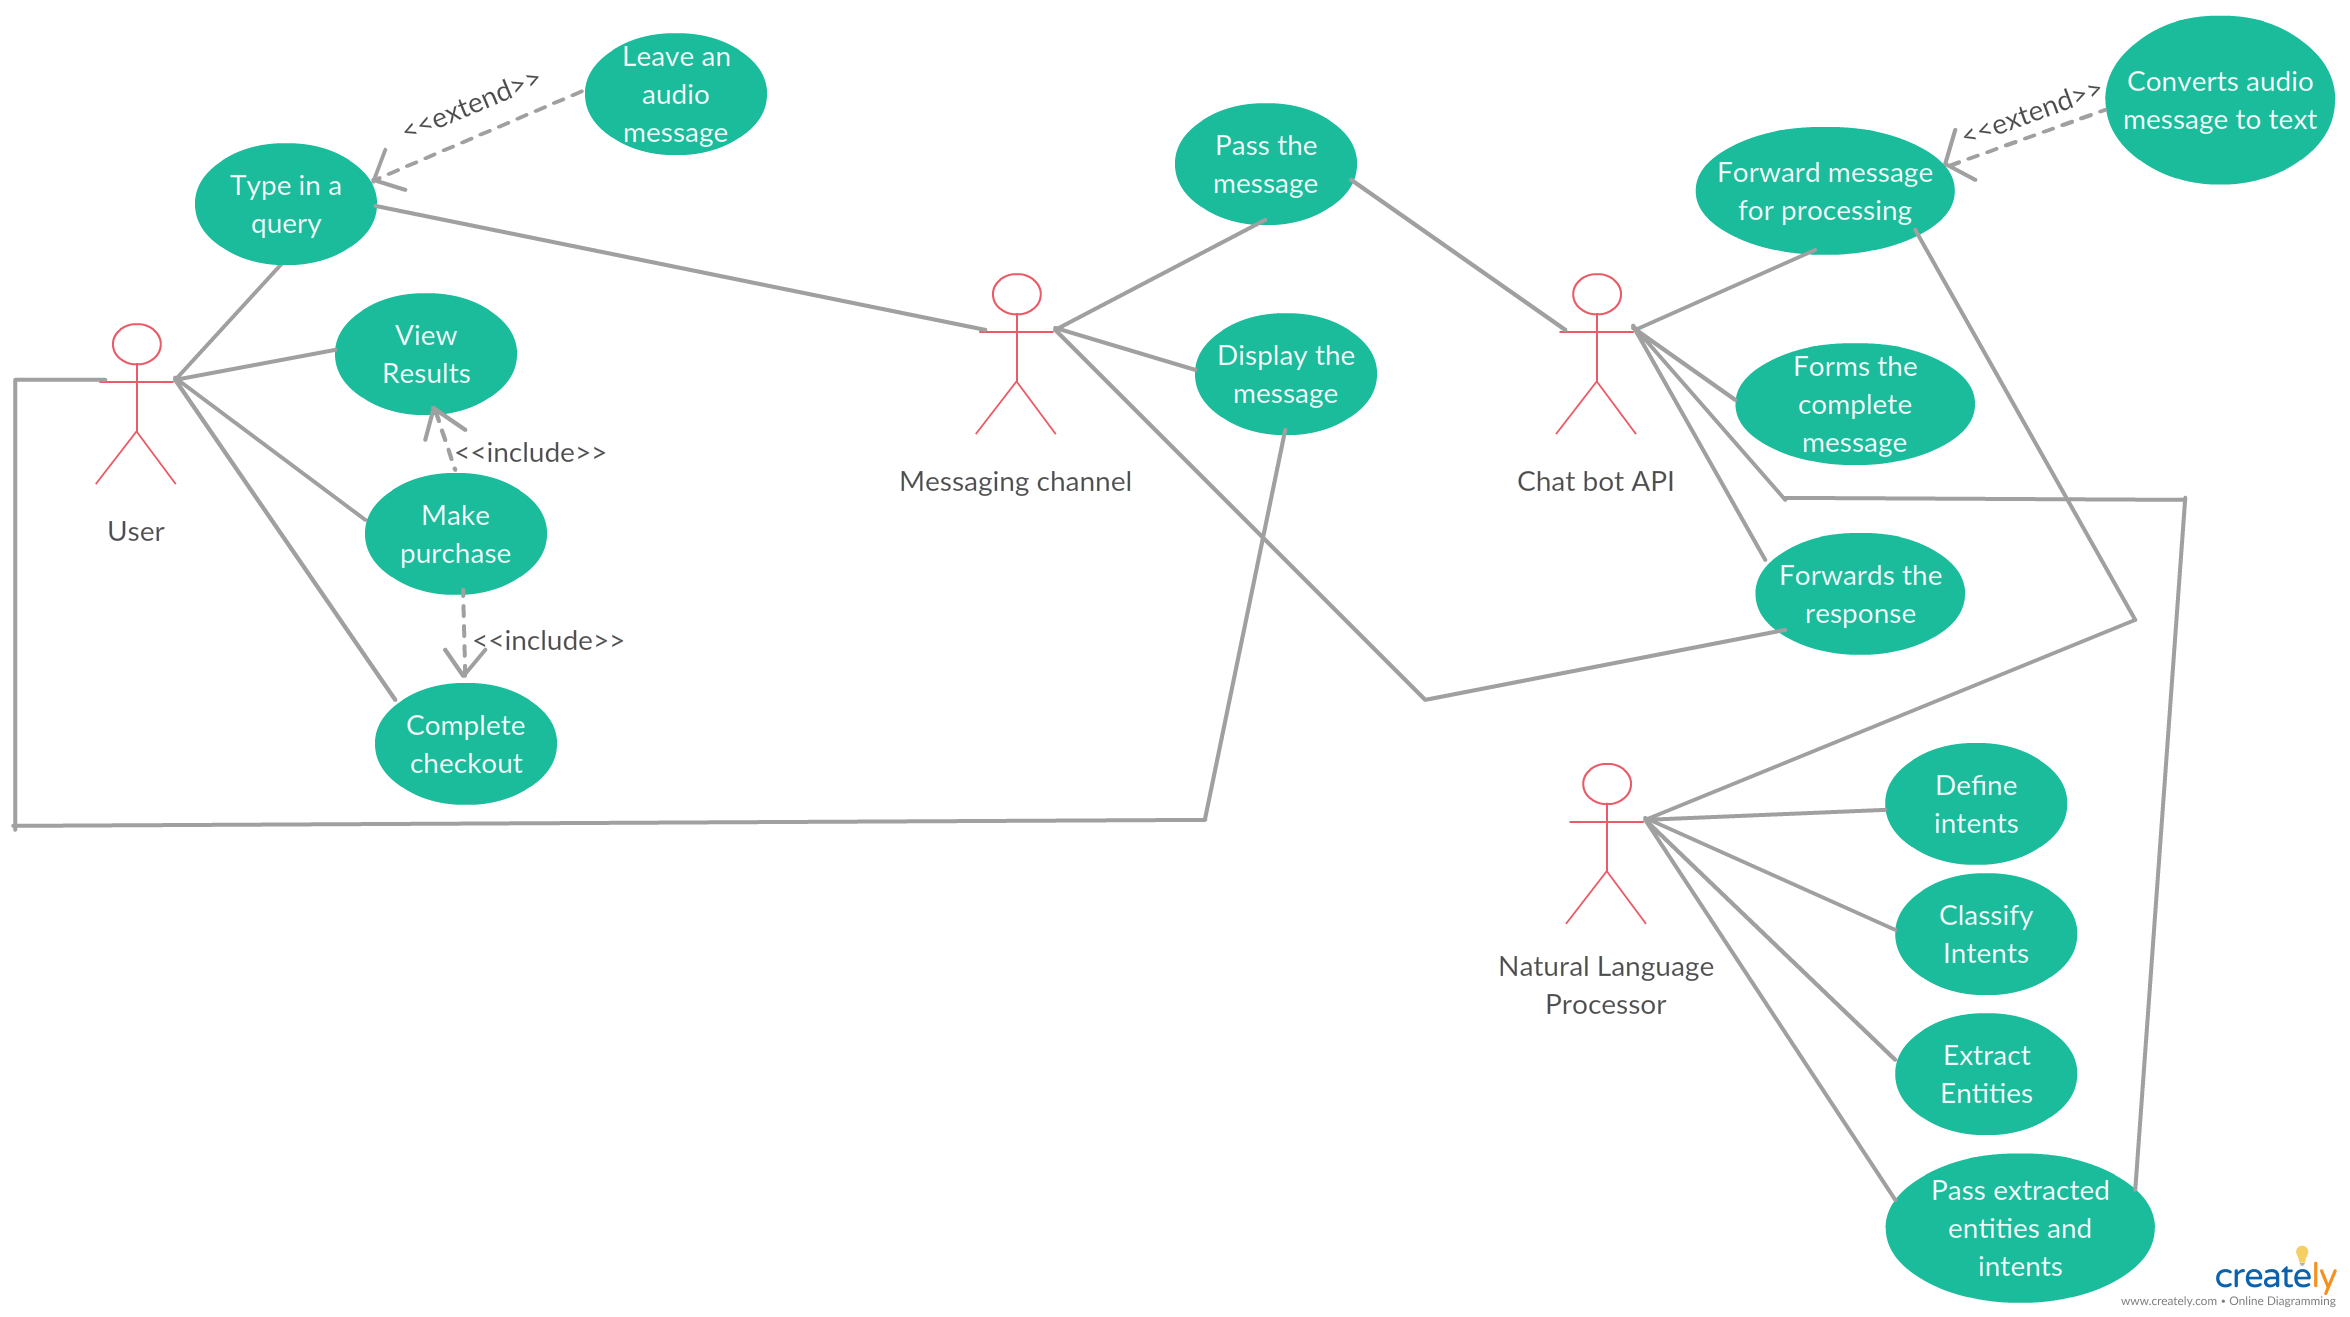 chatbot use case diagram use case diagram for chatbot shows how a message chatbot functions you can use this example diagram to plan your own chatbot  [ 2350 x 1317 Pixel ]